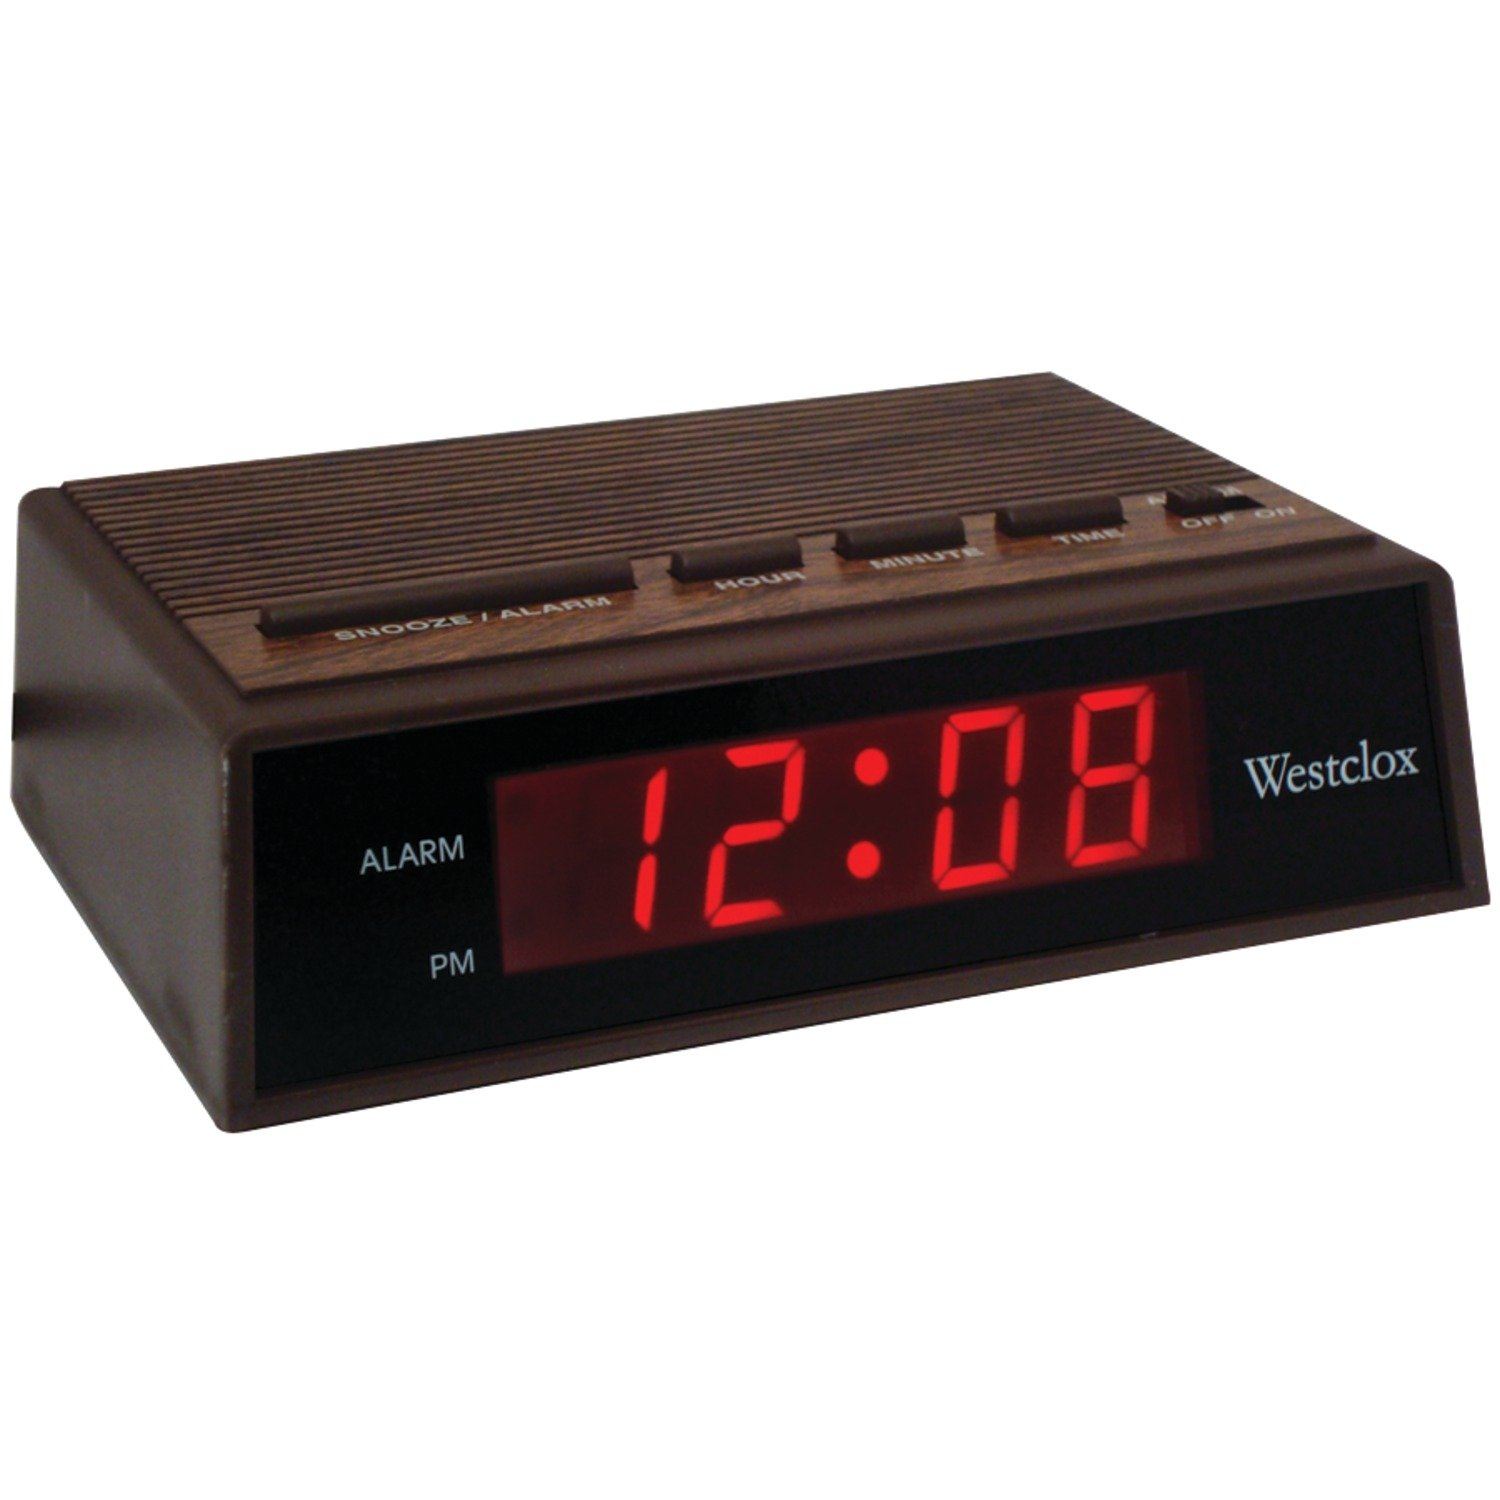 searching for stylish alarm clock radio my les paul forum. Black Bedroom Furniture Sets. Home Design Ideas